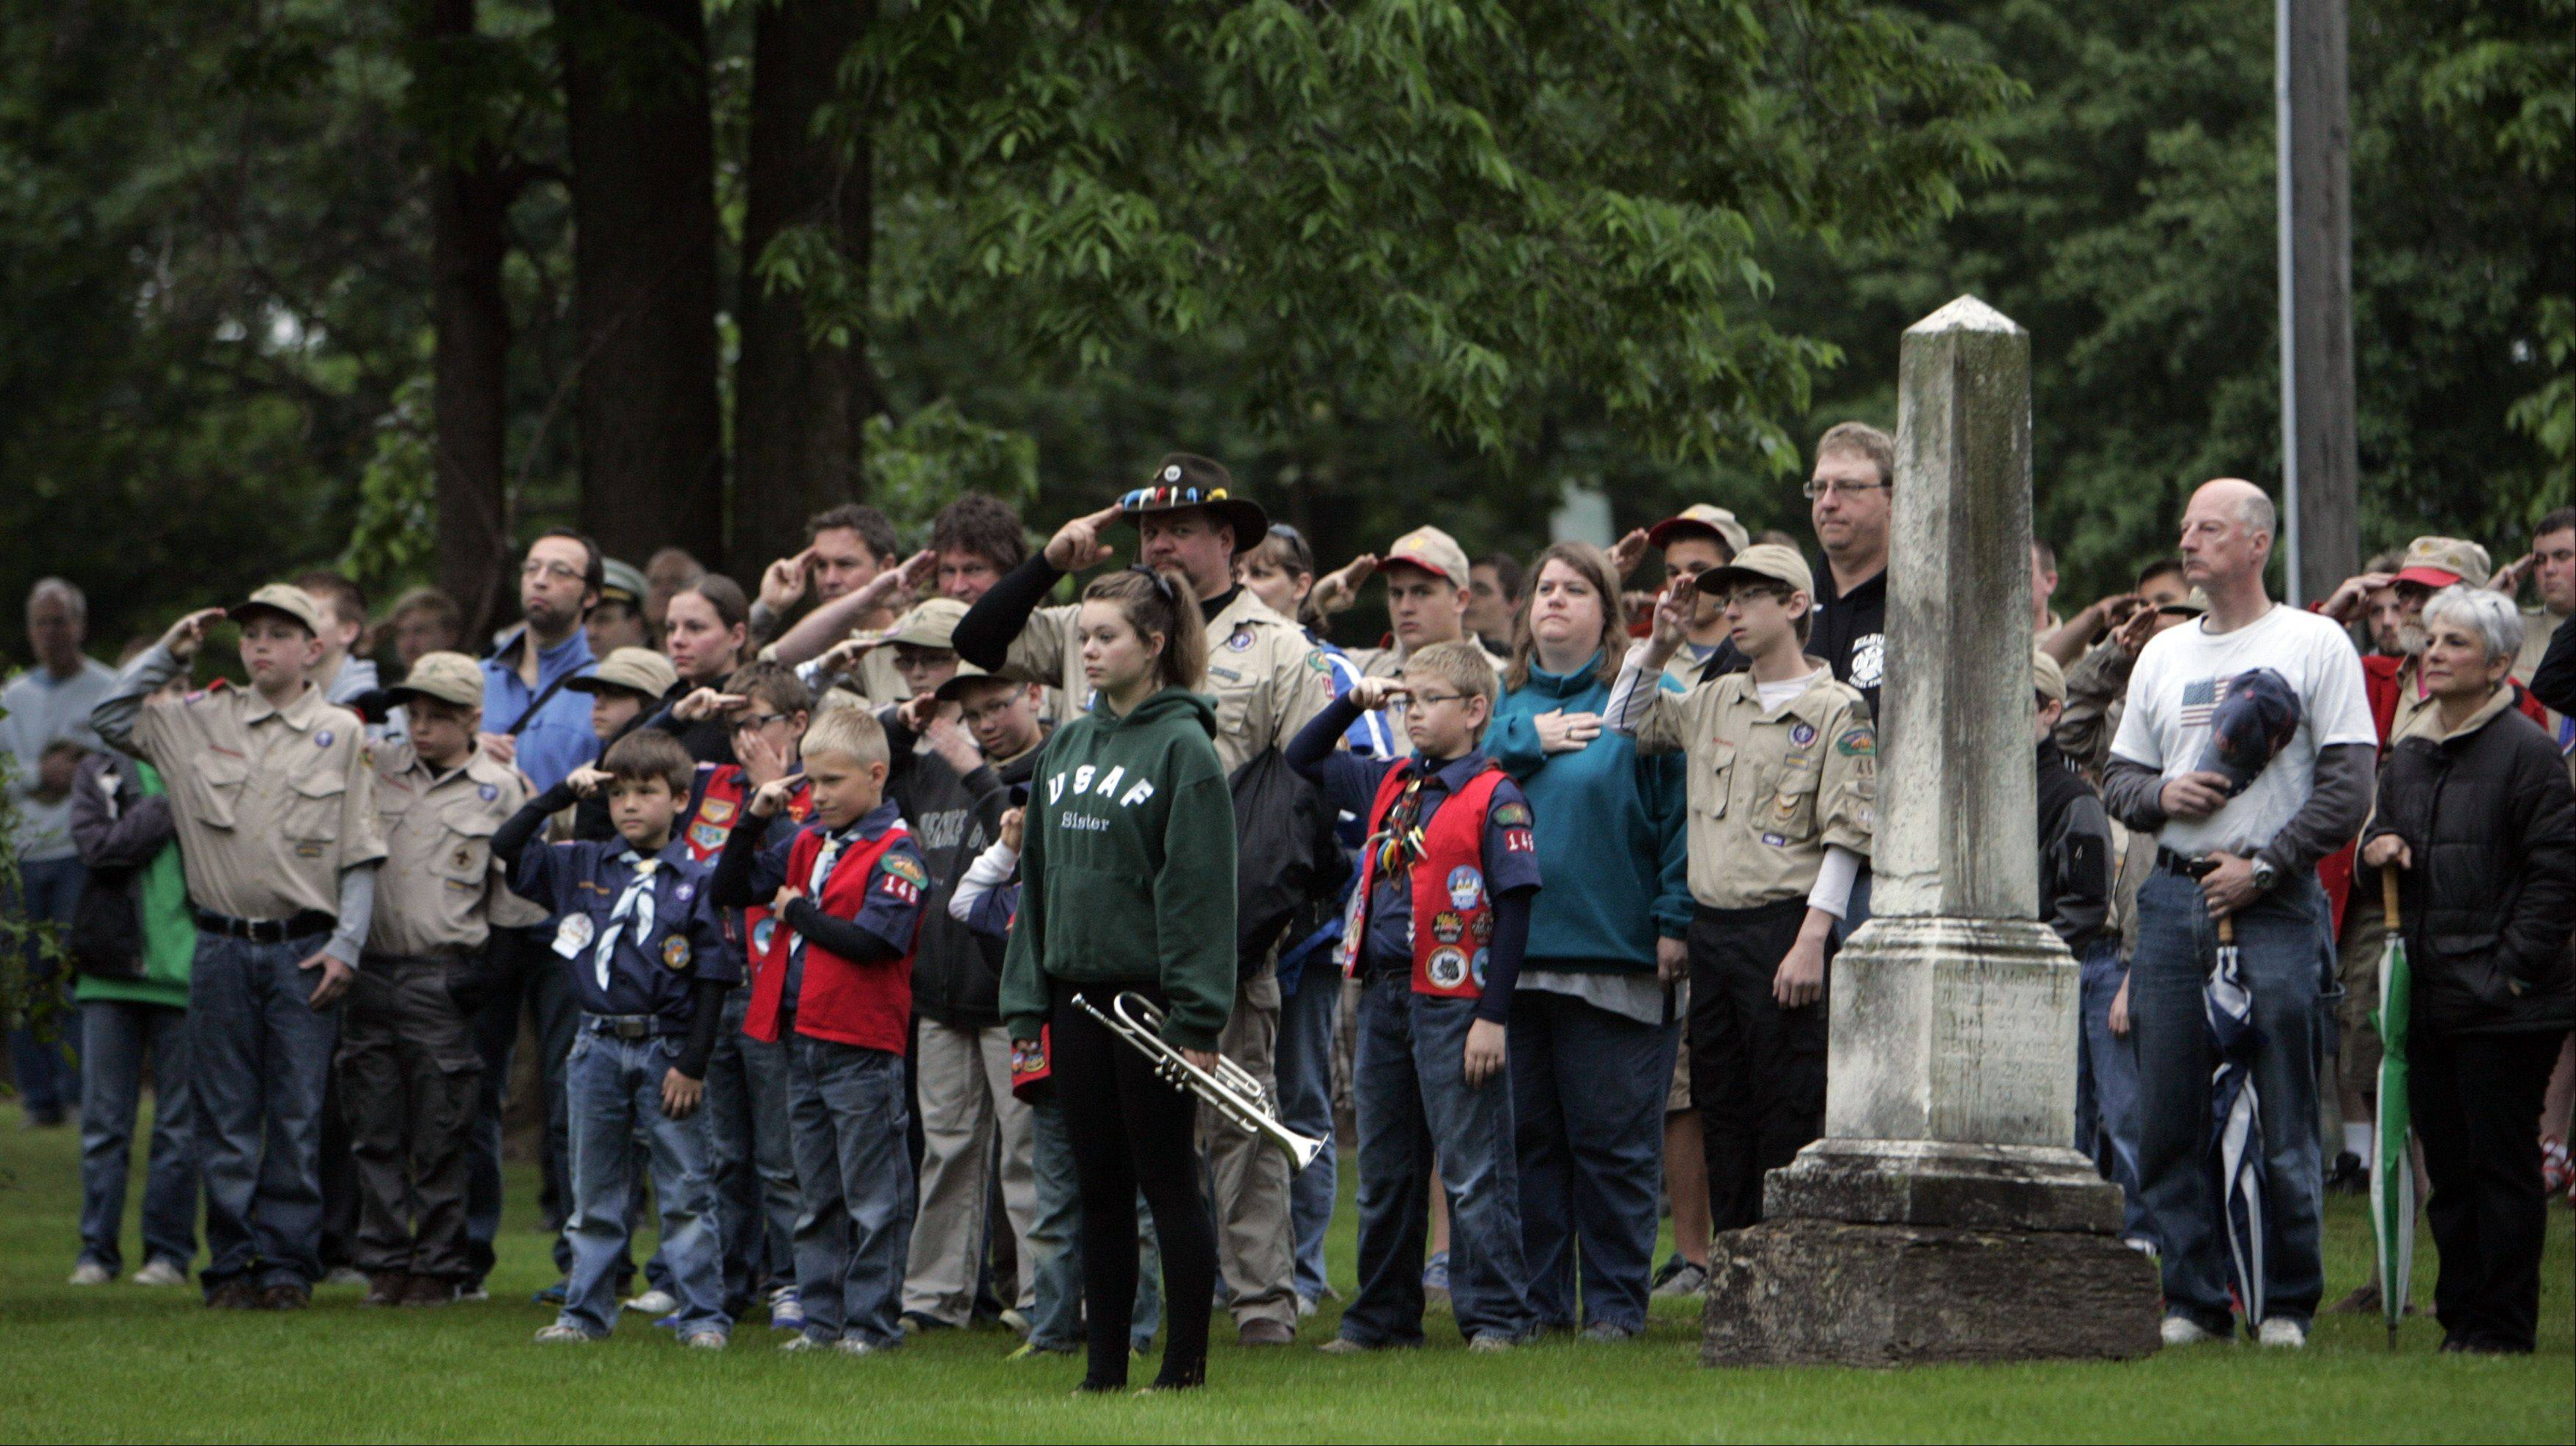 A large crowd turned out for the Memorial Day celebration early Monday morning at South Cemetery in St. Charles.